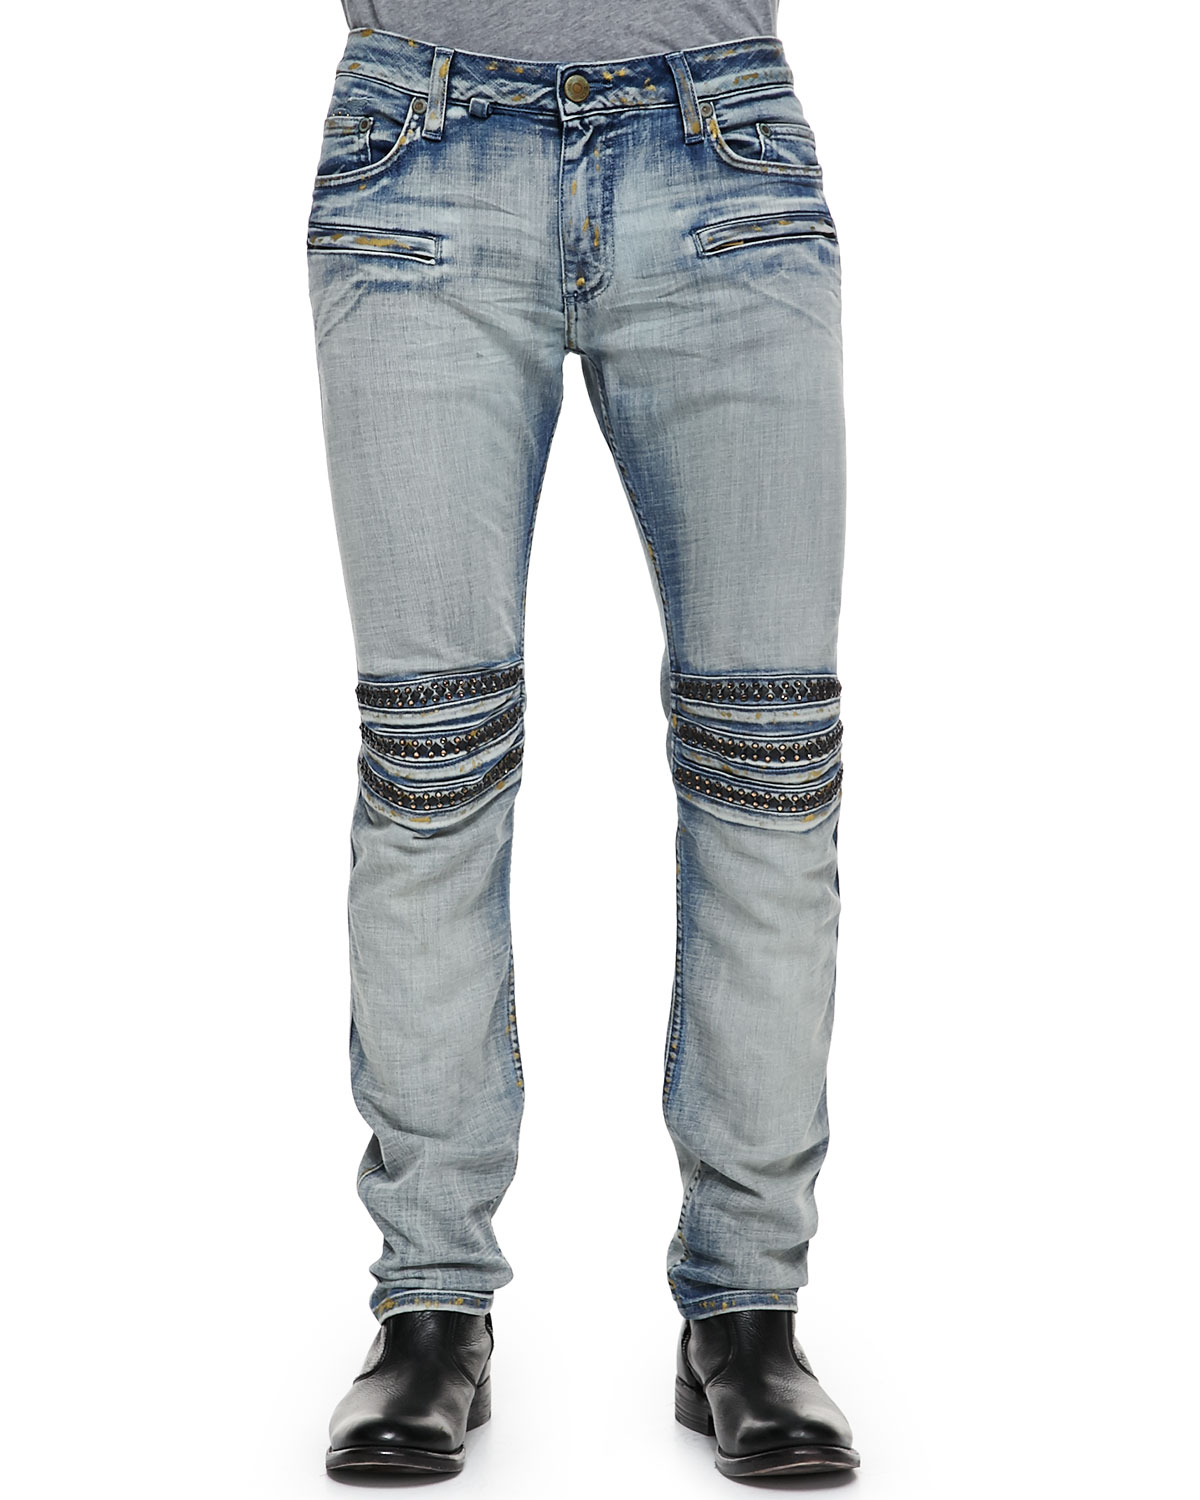 Robin 39 S Jean Gold Miner Motor Faded Studded Jeans In Blue